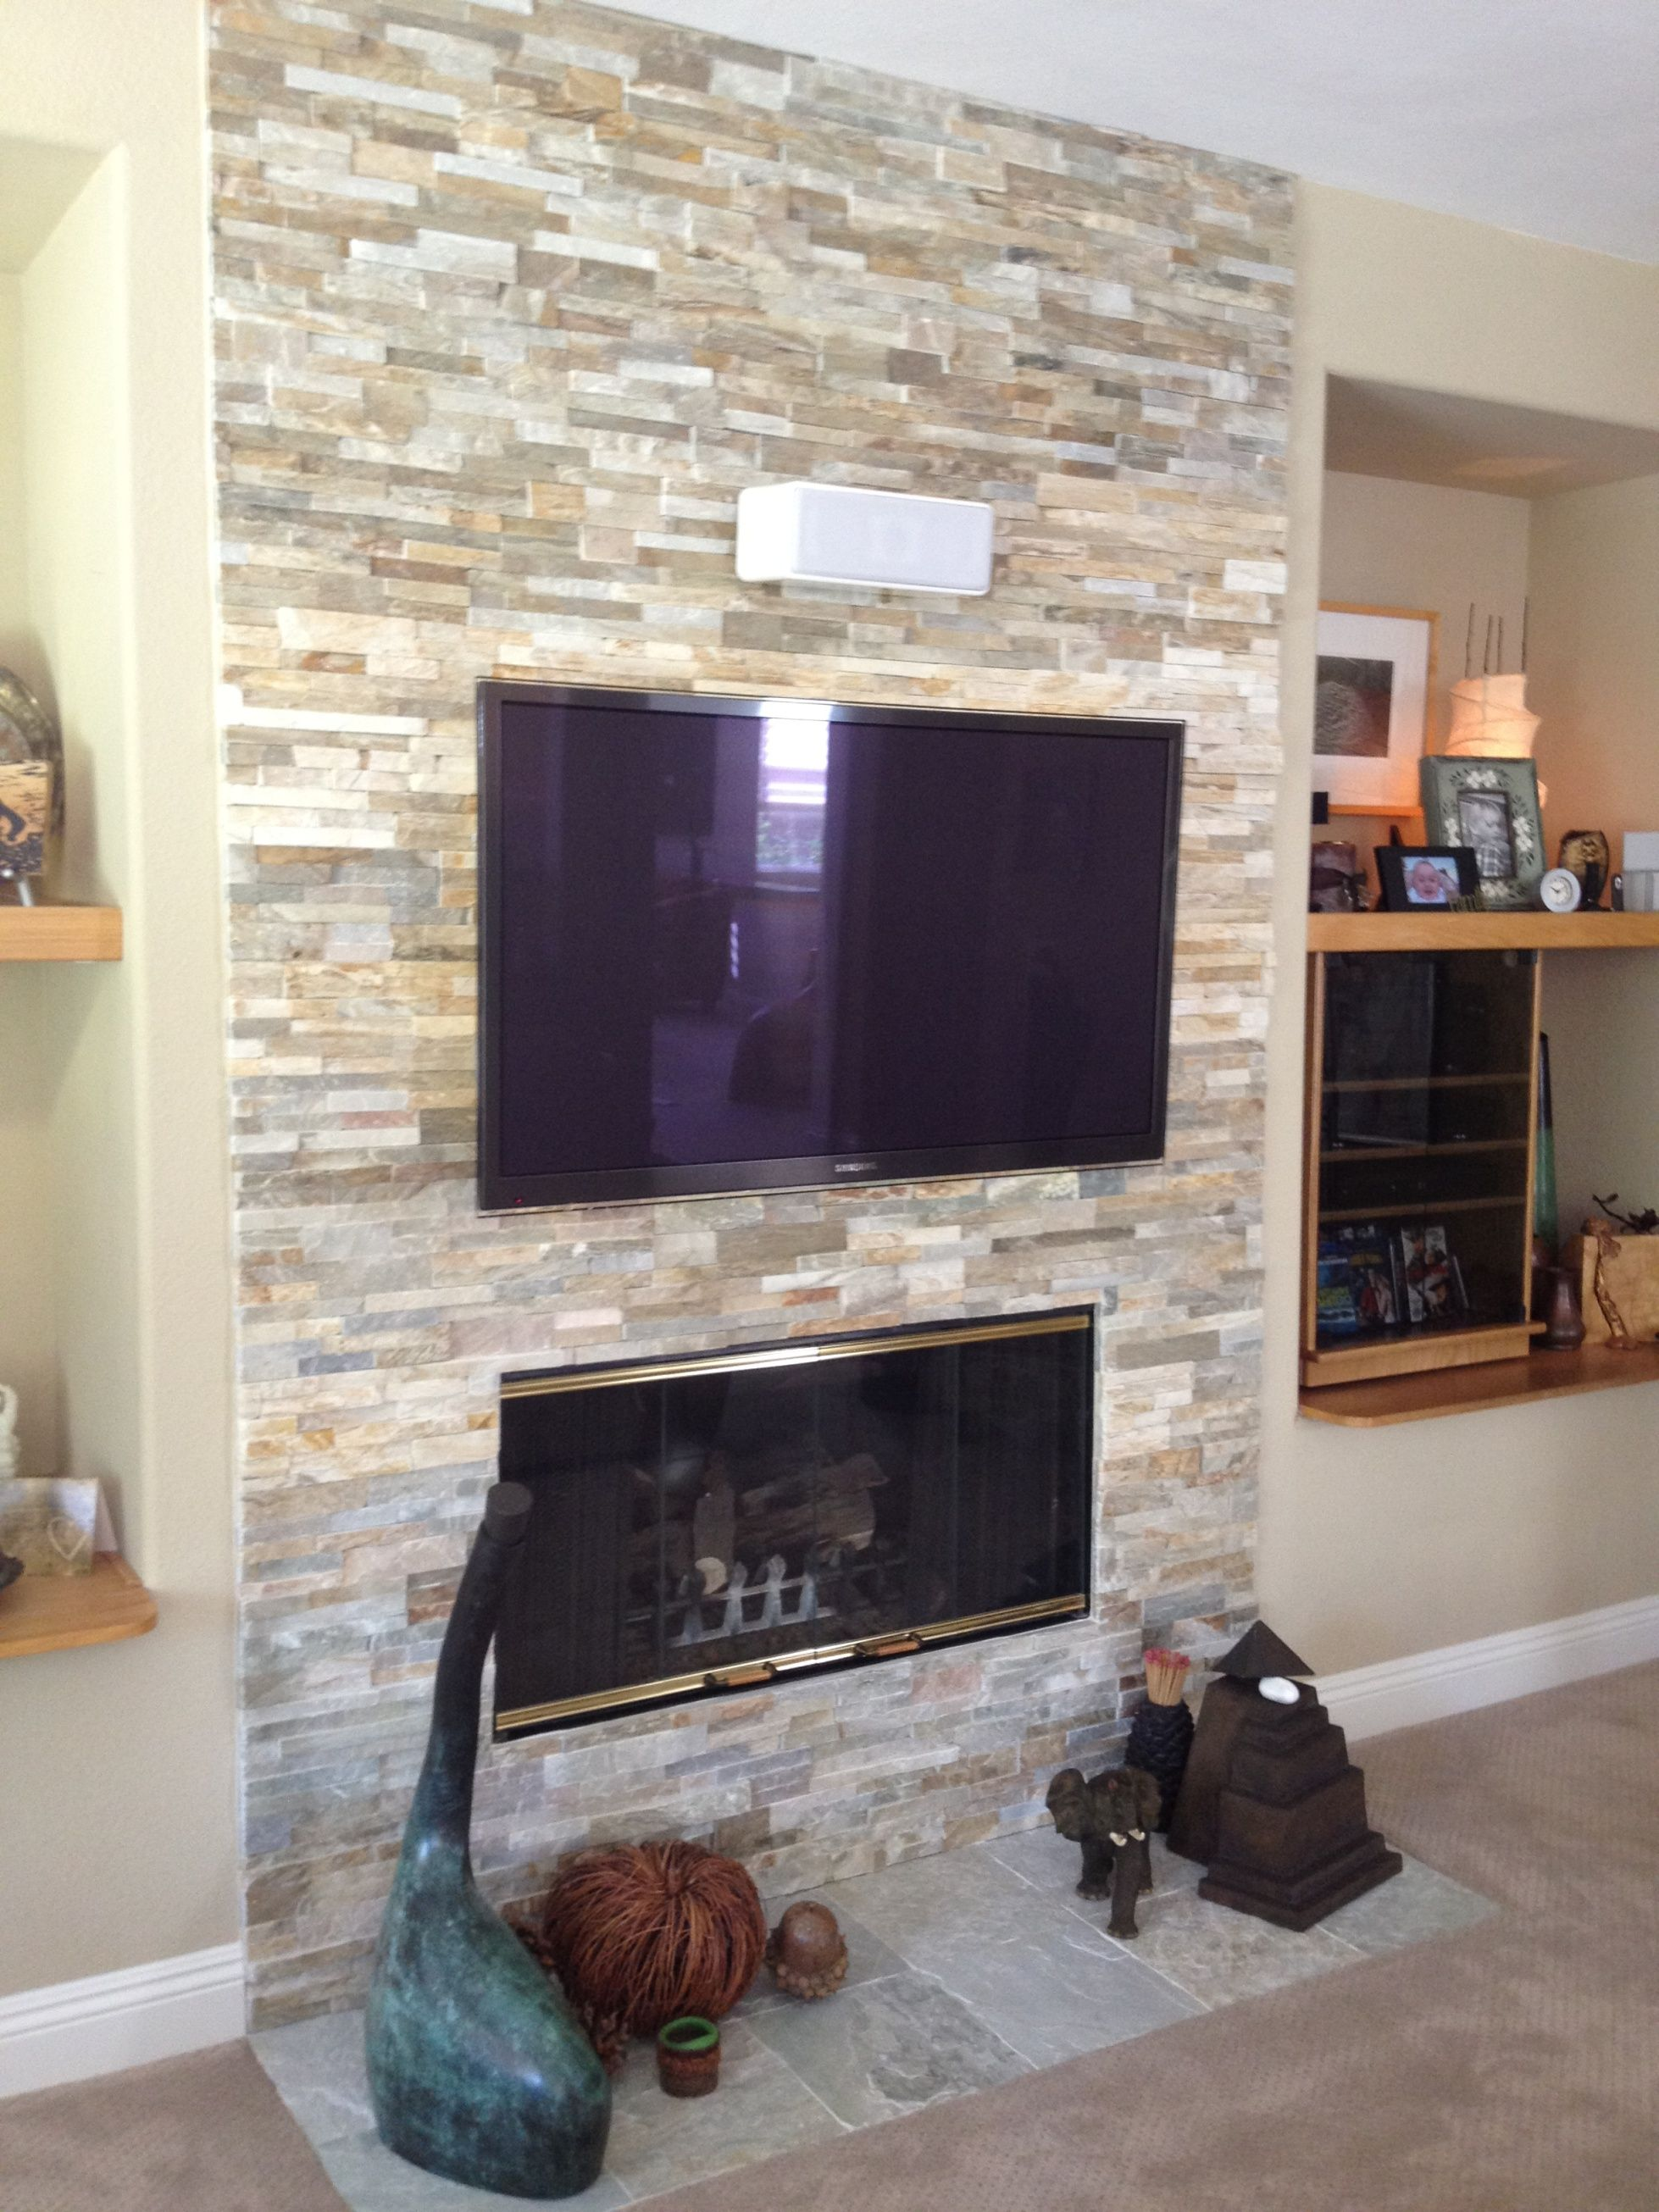 furniturefireplacedesignsandrenovationslivingroomstonewith